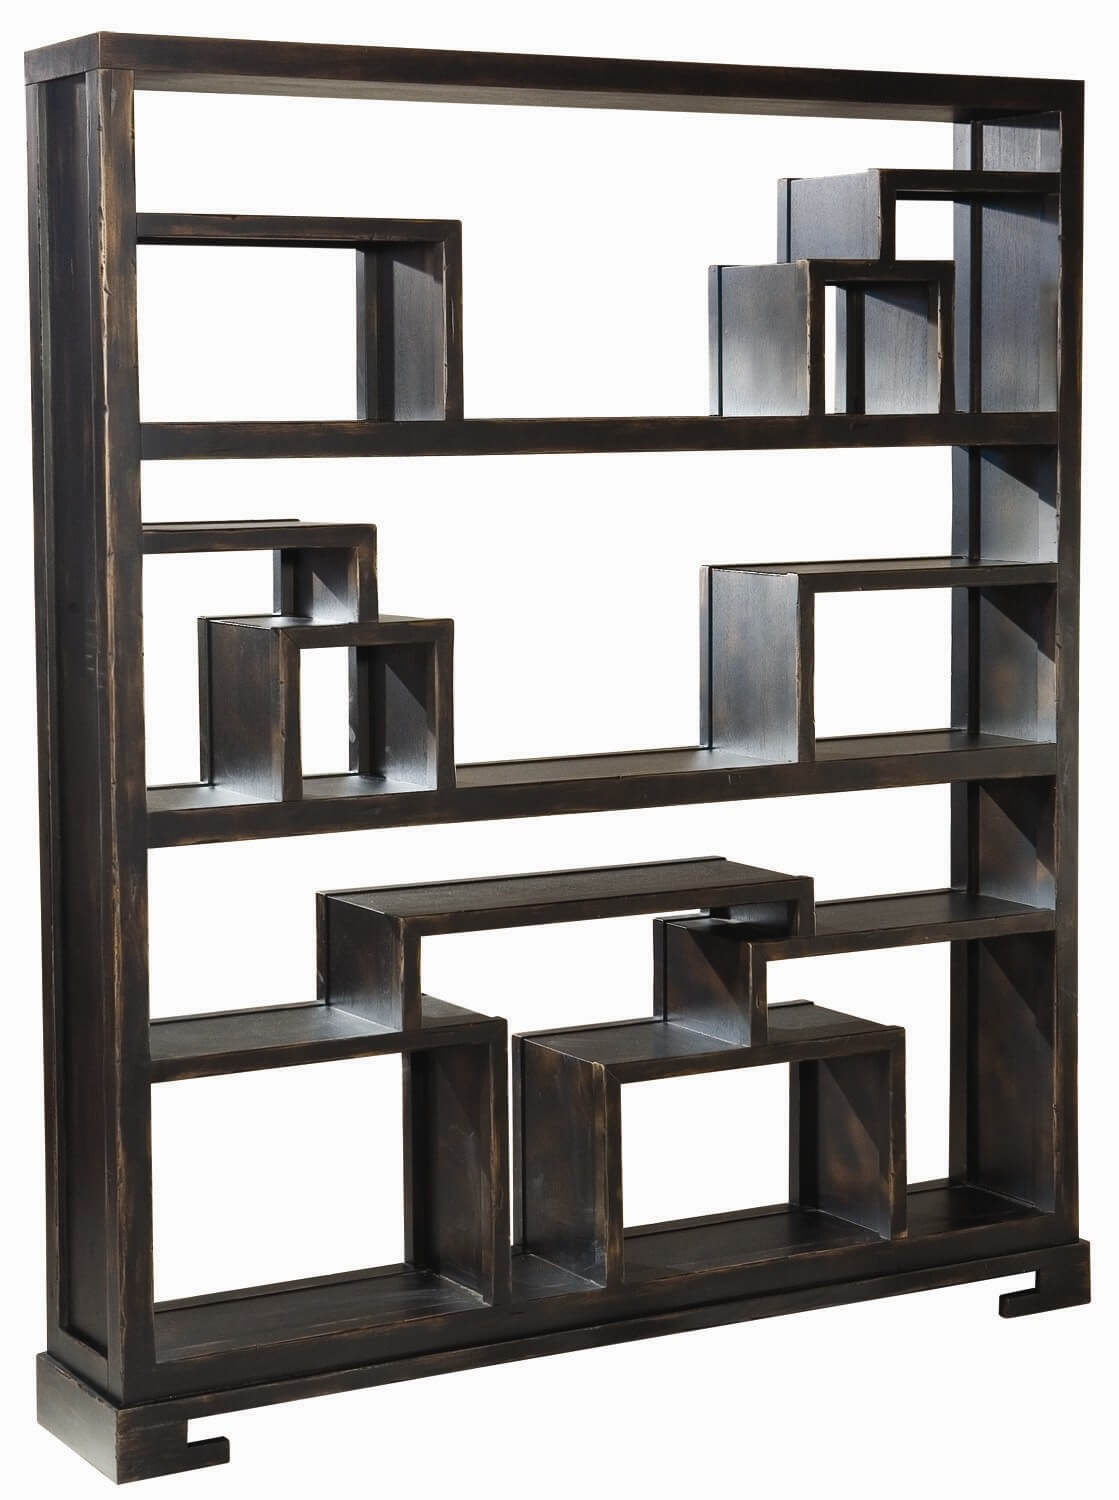 itm bookcase cube organizer closet storage shelves furniture weathered bookcases cubbies